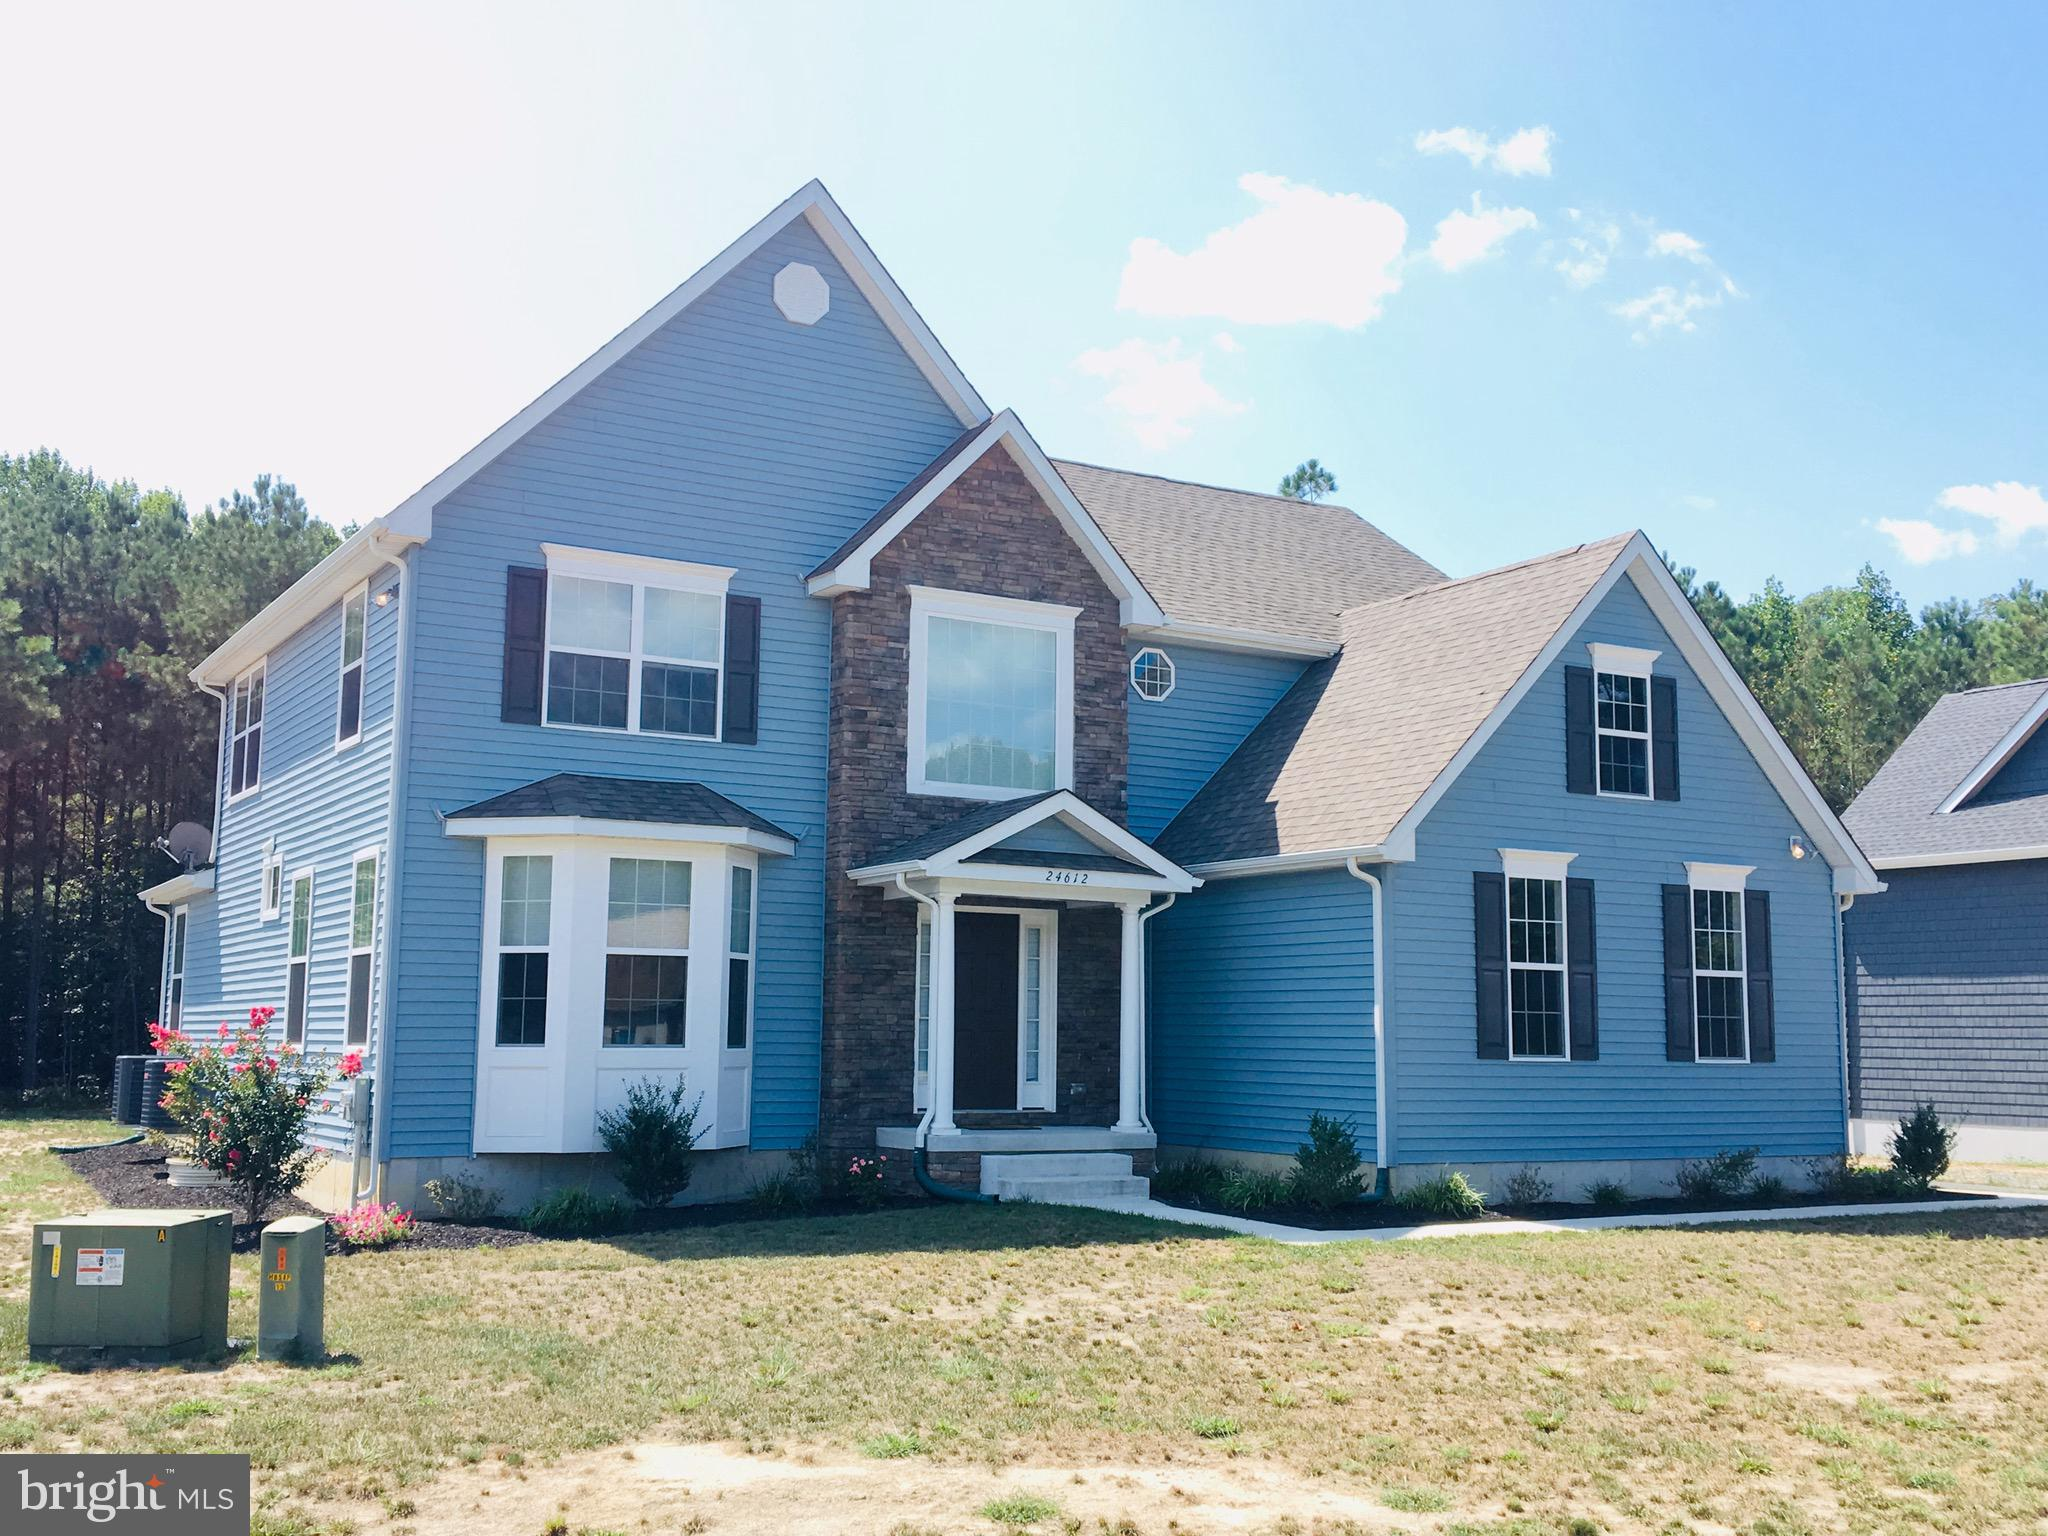 Amish built stick framed homes with fantastic floorplans, hardwood foyers, 9' ceilings, and more. Large cleared or wooded lots available with several models to choose from.  25 minutes to the beach!!